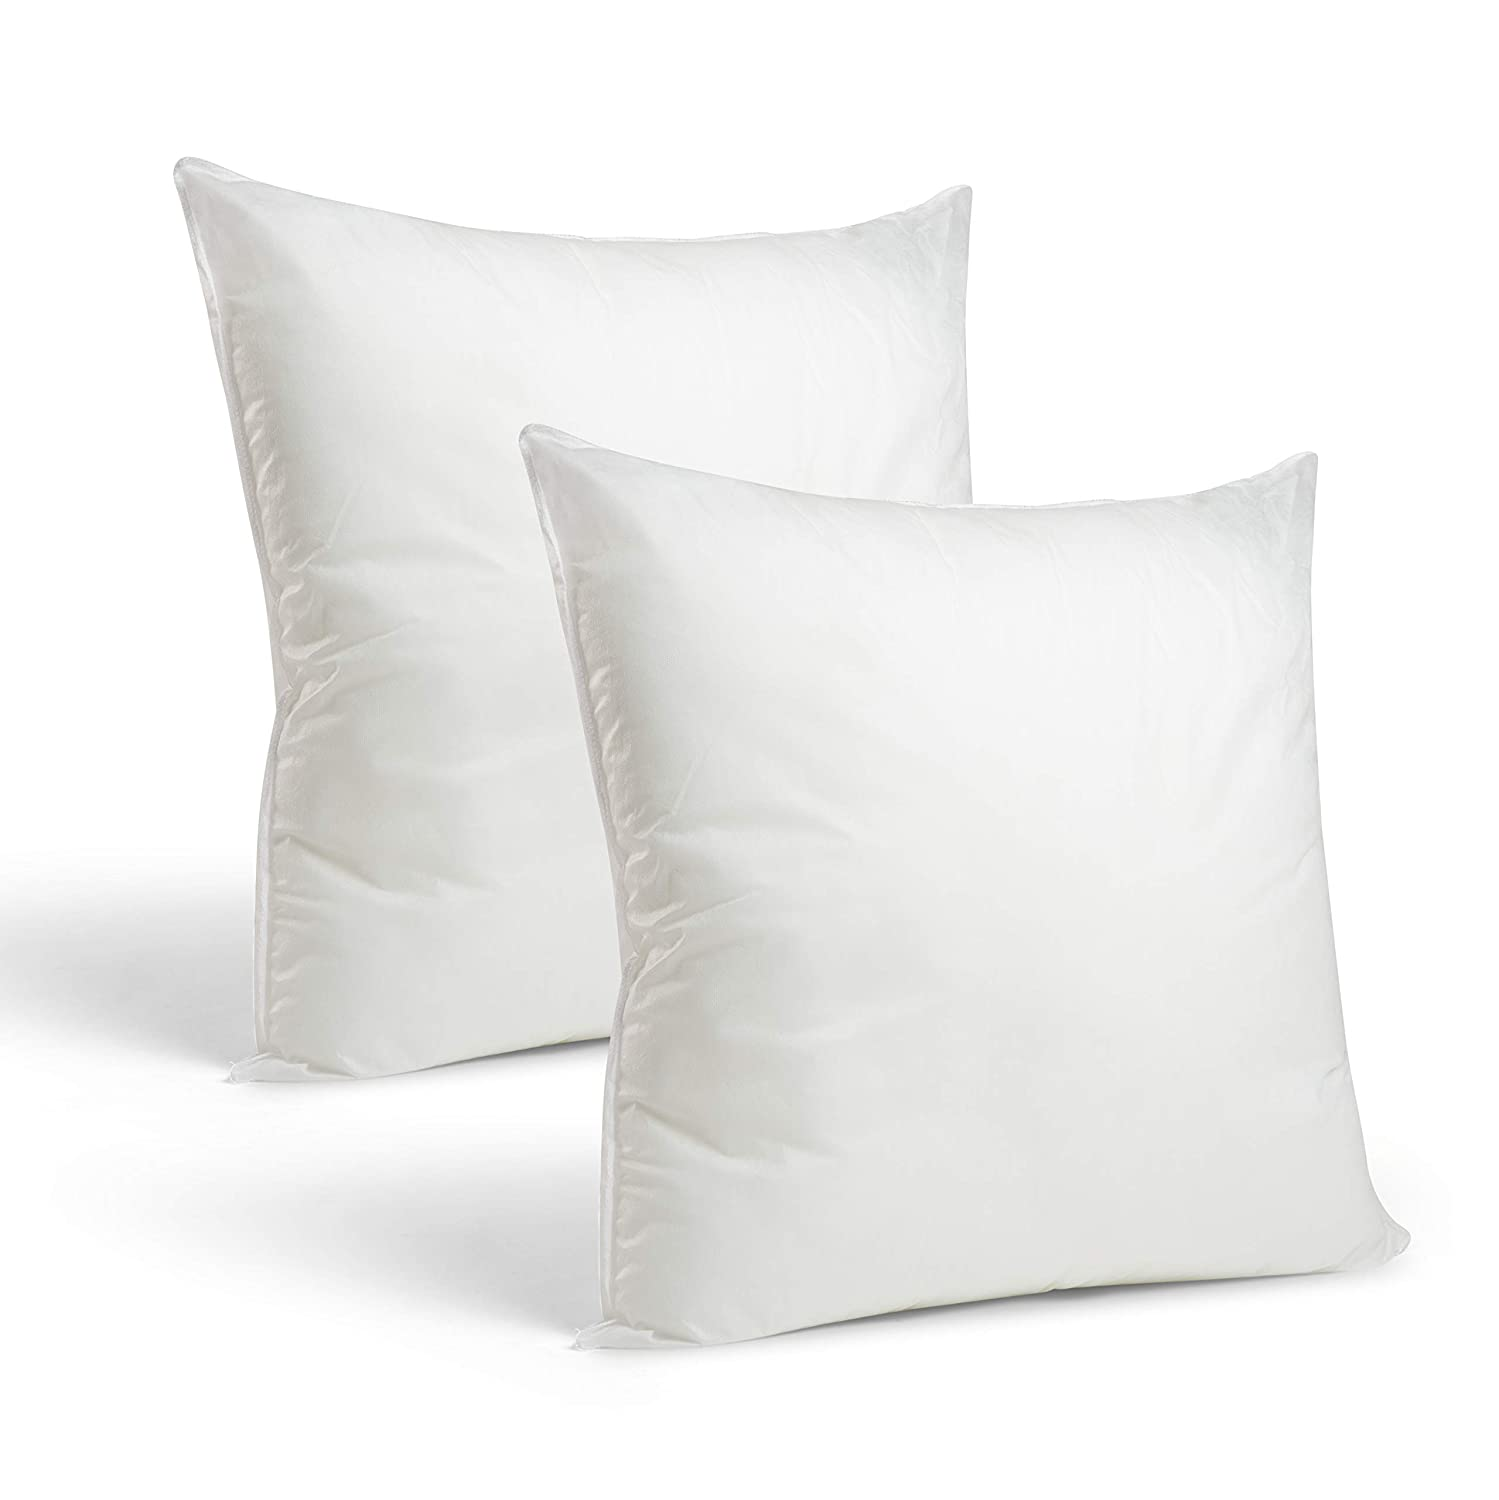 Amazoncom Set Of 2 22 X 22 Premium Hypoallergenic Stuffer Pillow